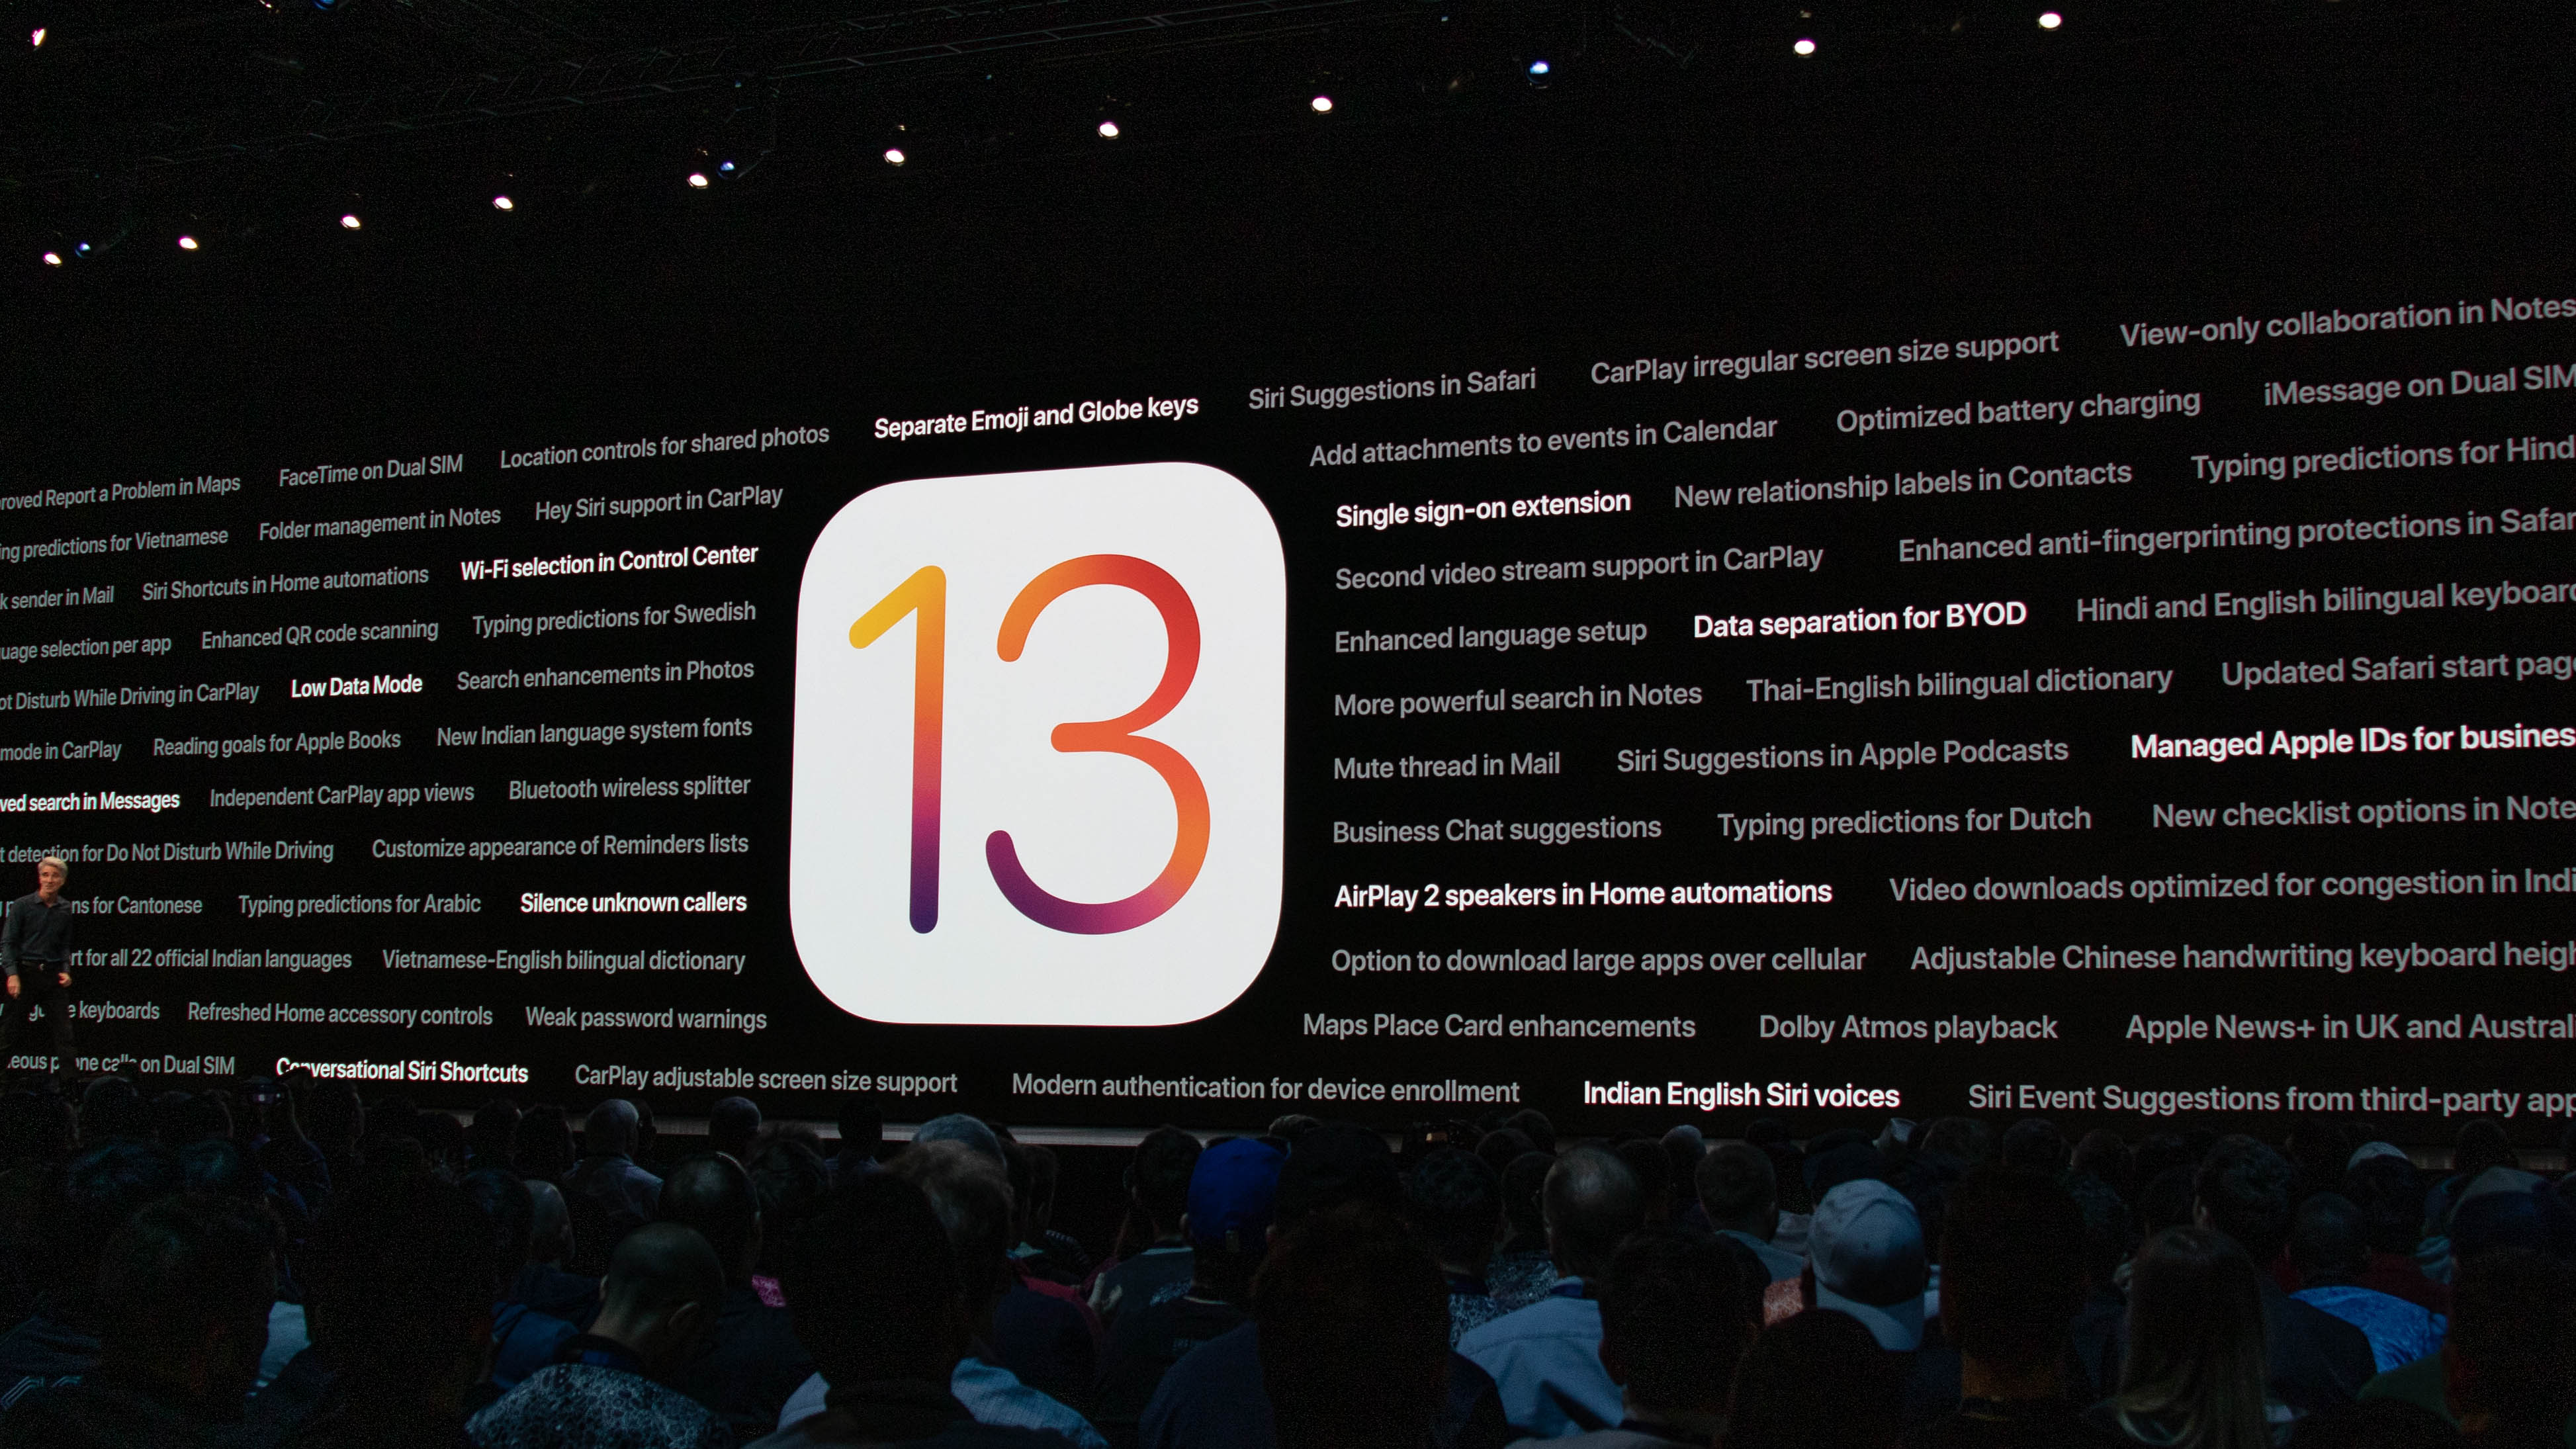 QwZxT7vgmdKnsKeav3Dws4 - iOS 13: release date and features list